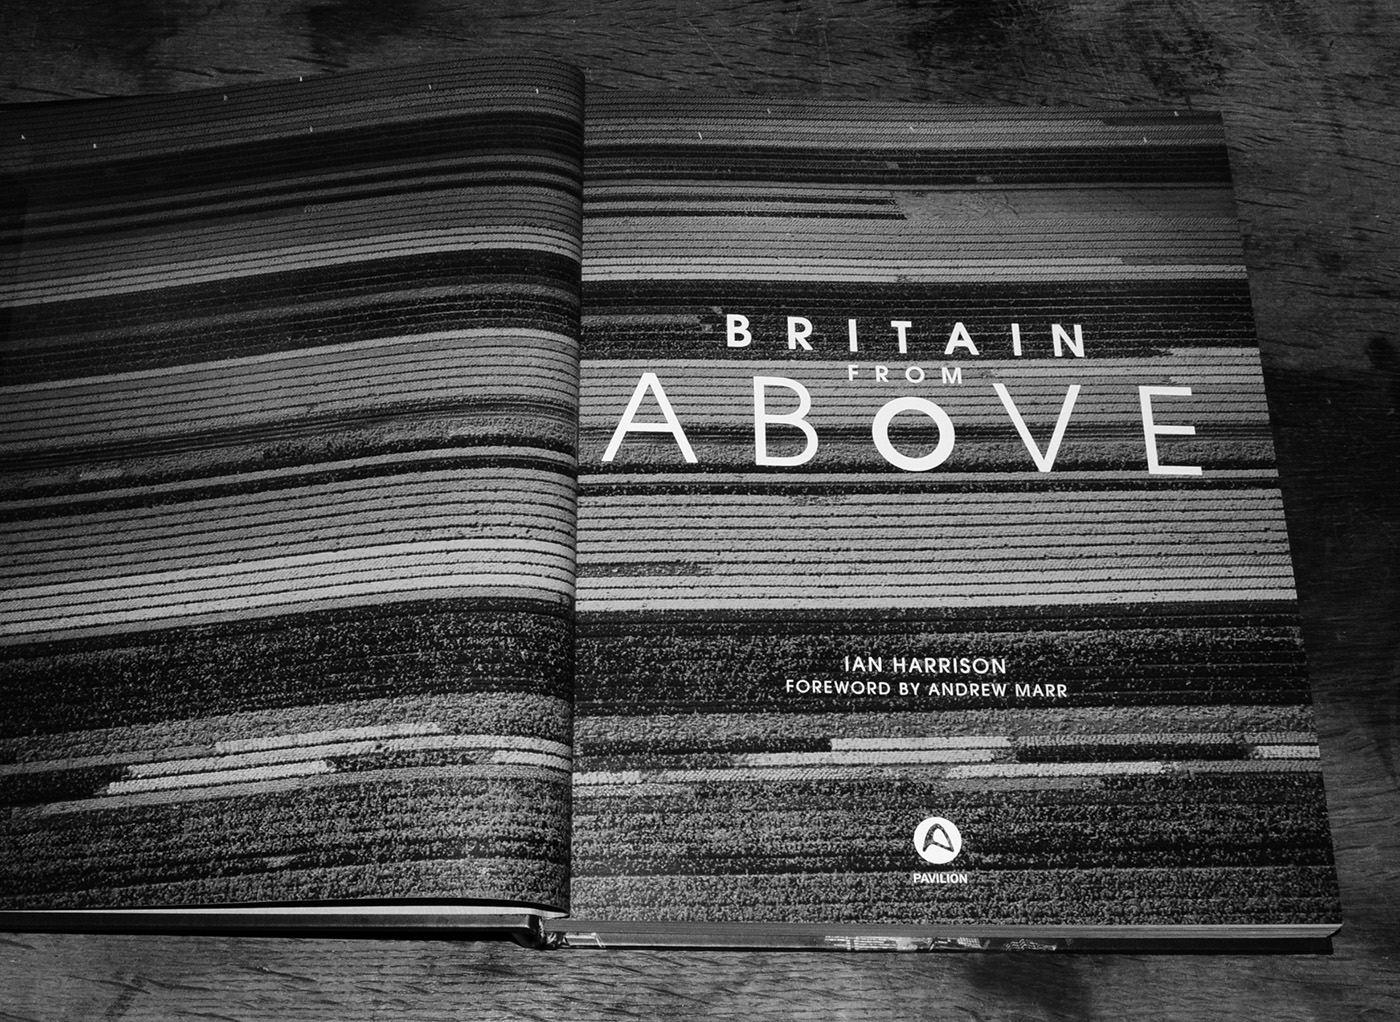 britain-from-above-book-bbc-ian-harrison-andrew-marr-a-year-in-the-country-10